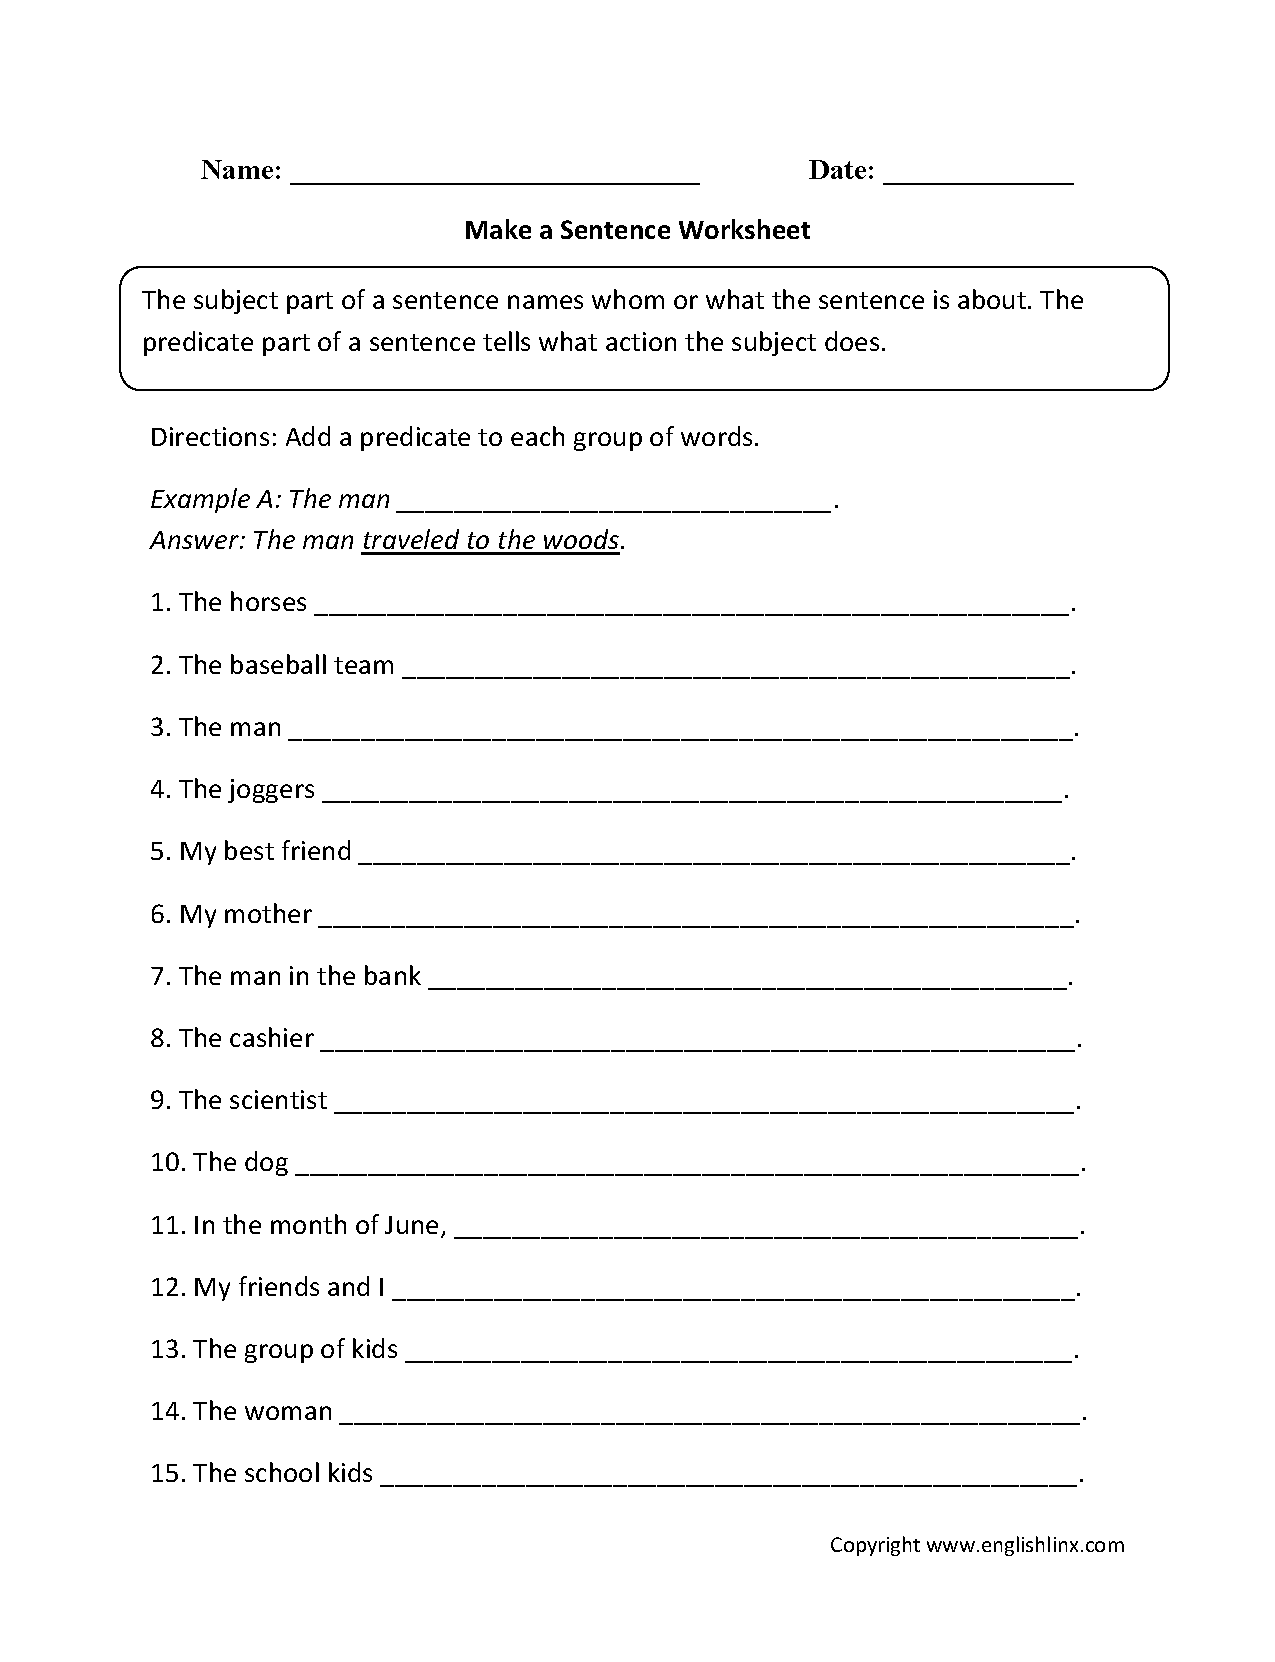 Worksheets Make Worksheets sentence structure worksheets building worksheets